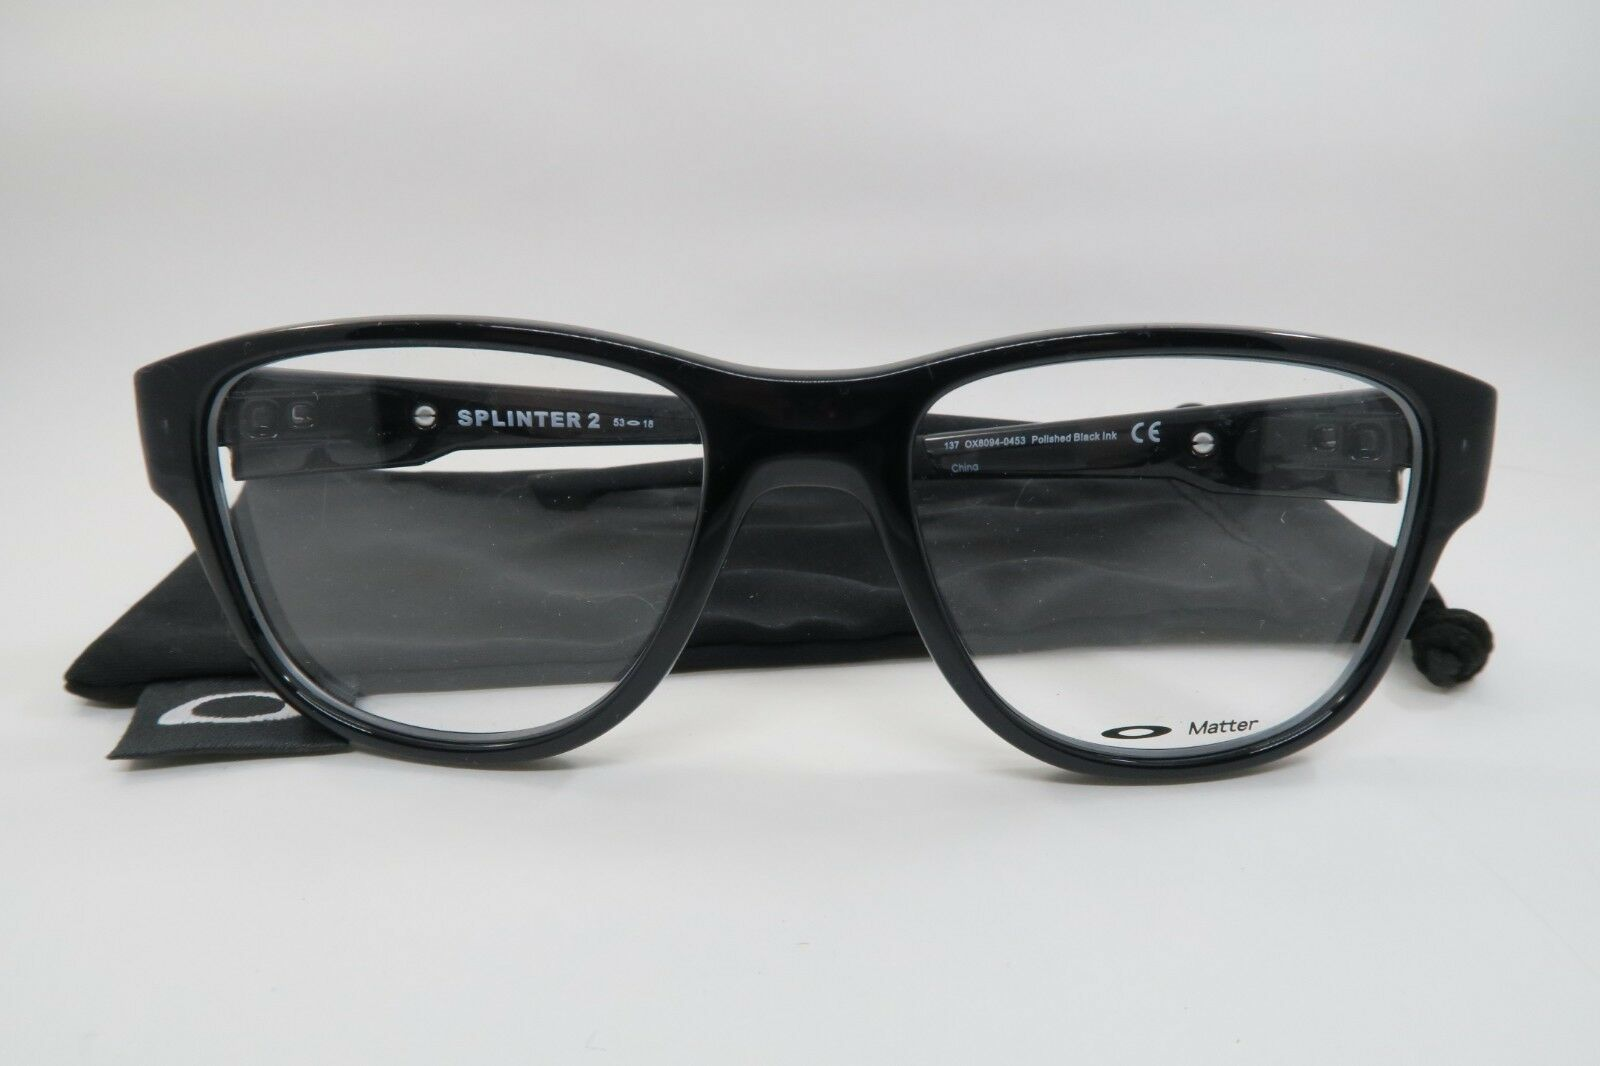 a48766aae49c6 New Authentic Oakley OX8094-0453 Polished Black Ink Eyeglasses 53mm w   Cloth Bag -  85.00